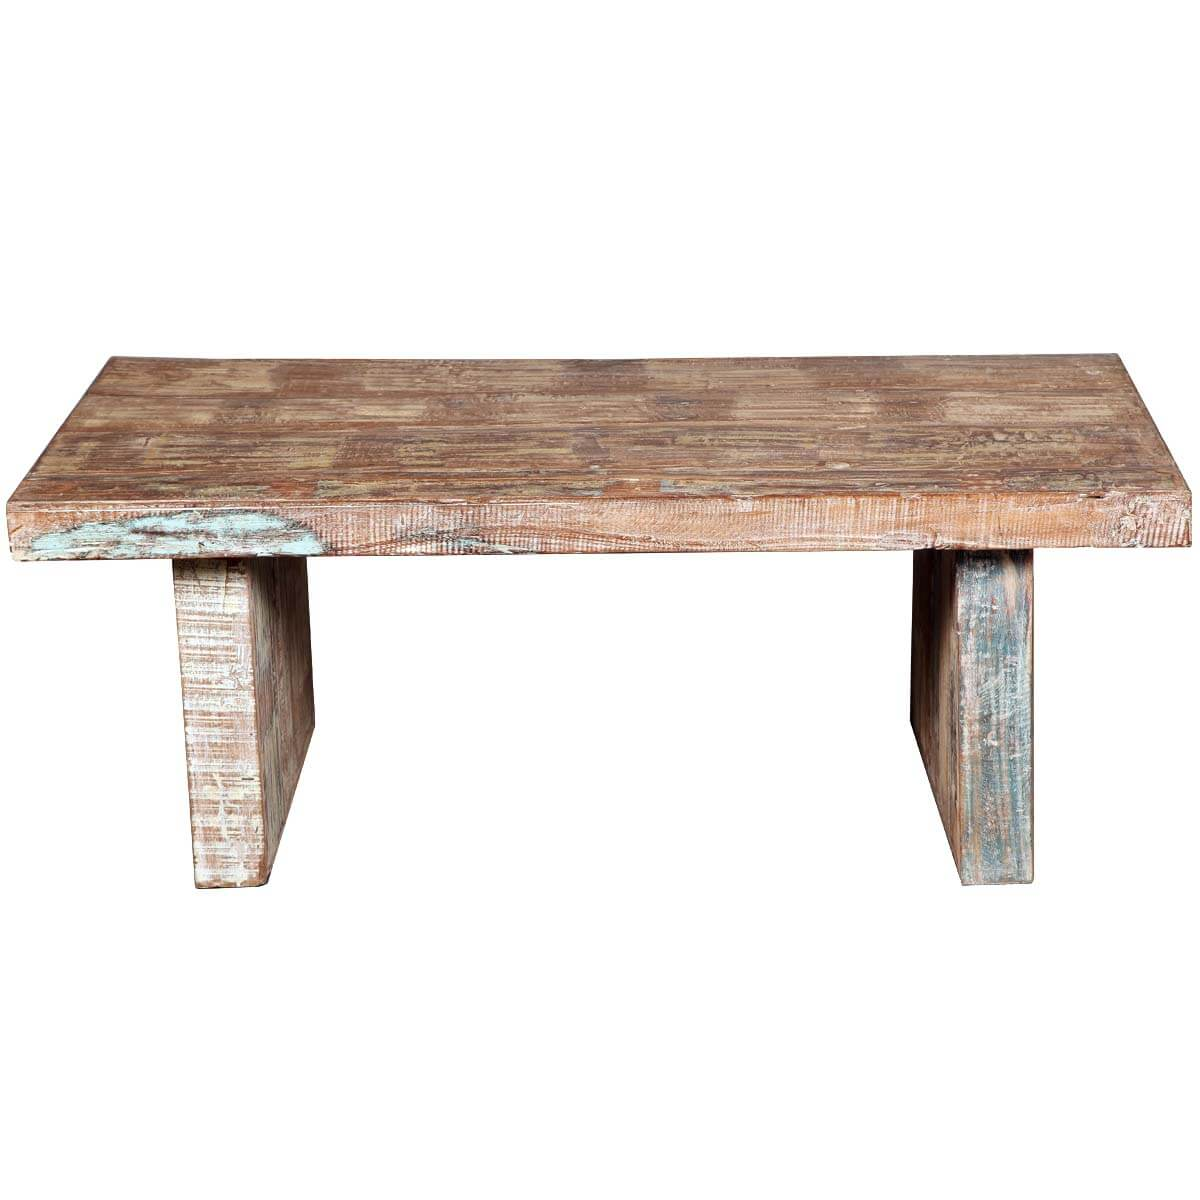 Large Distressed Wood Coffee Table: Rustic Mission Reclaimed Wood Distressed Coffee Table